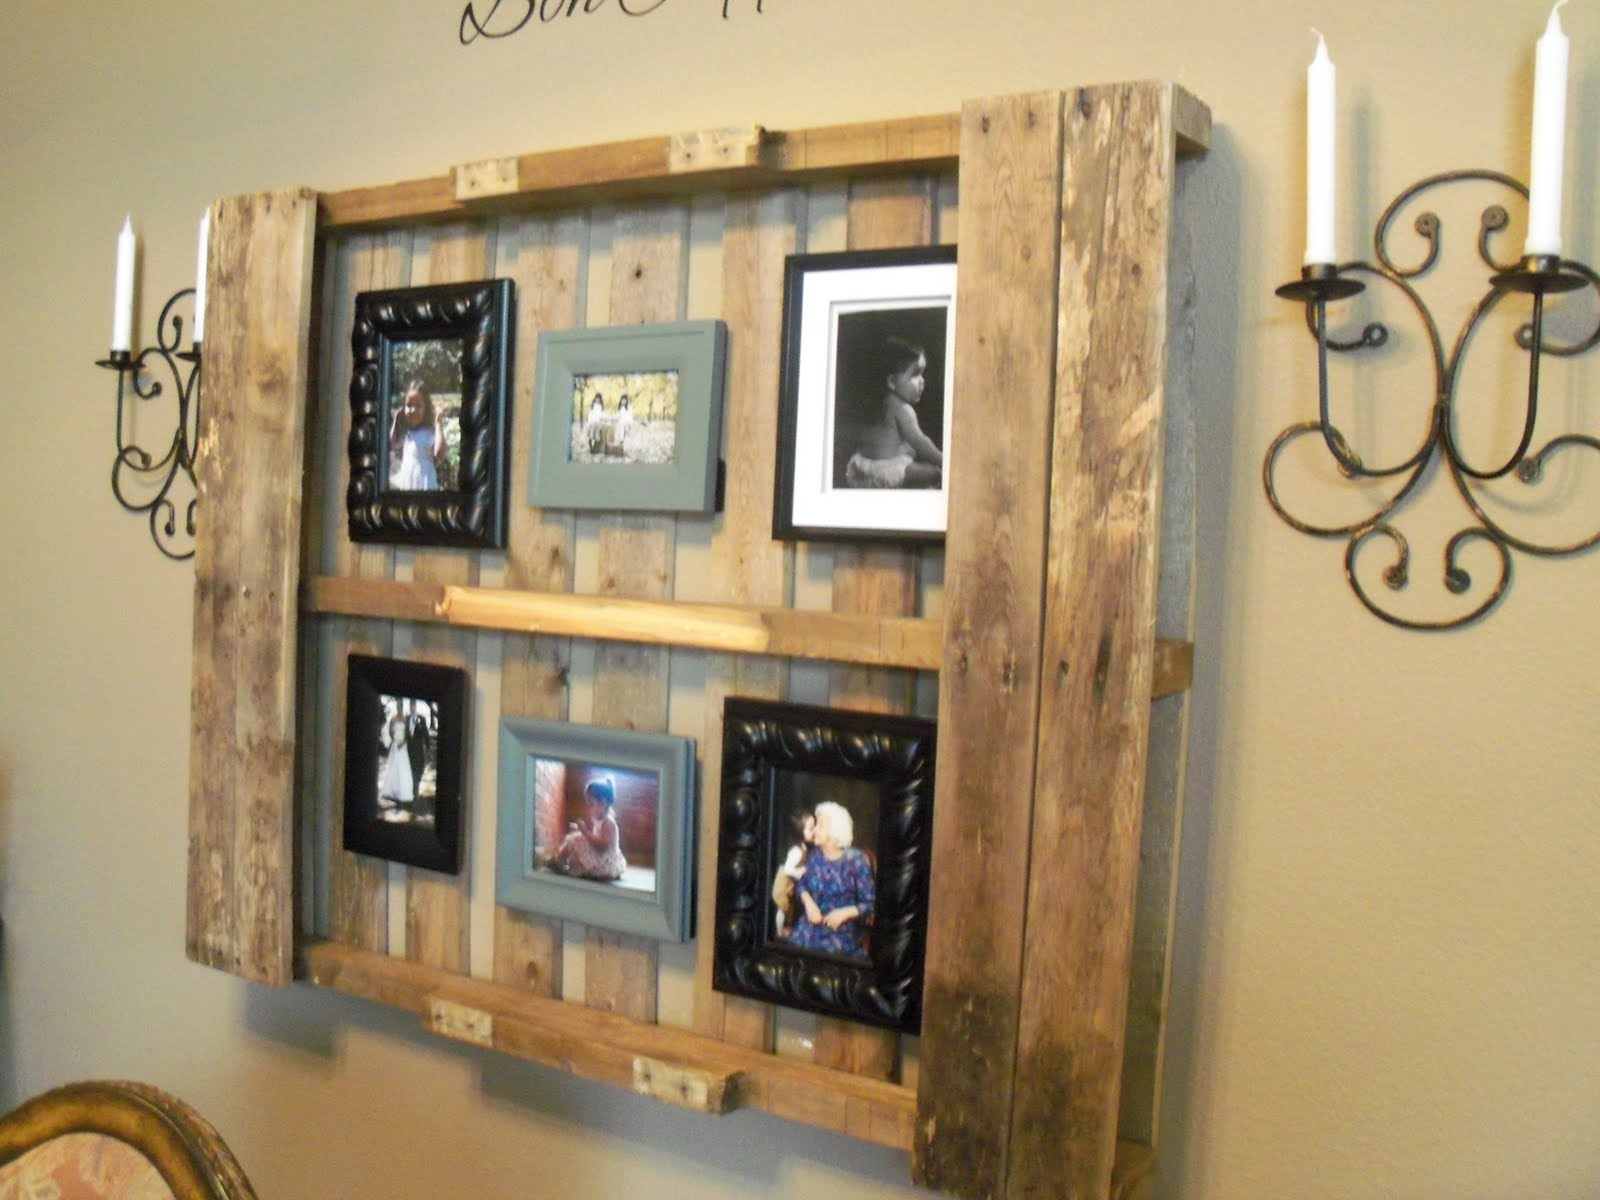 The baeza blog pallet decor for Diy pallet home decor